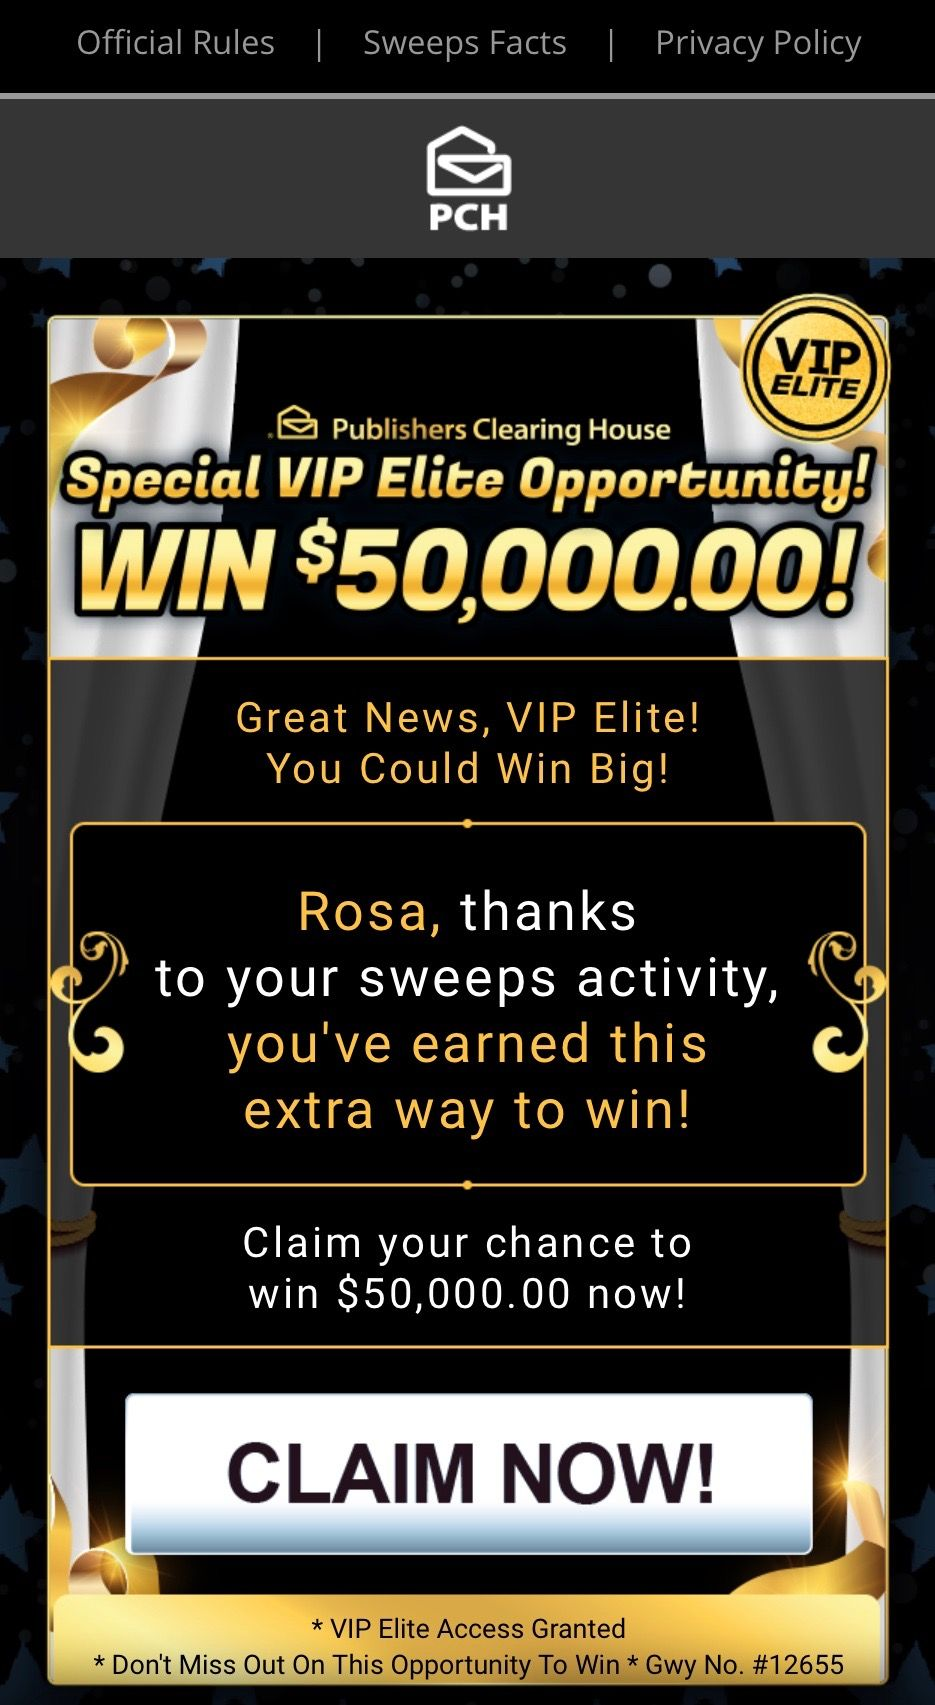 PCH VIP ELITE I RROJAS CLAIM MY ENTRY TO WIN 50,000.00